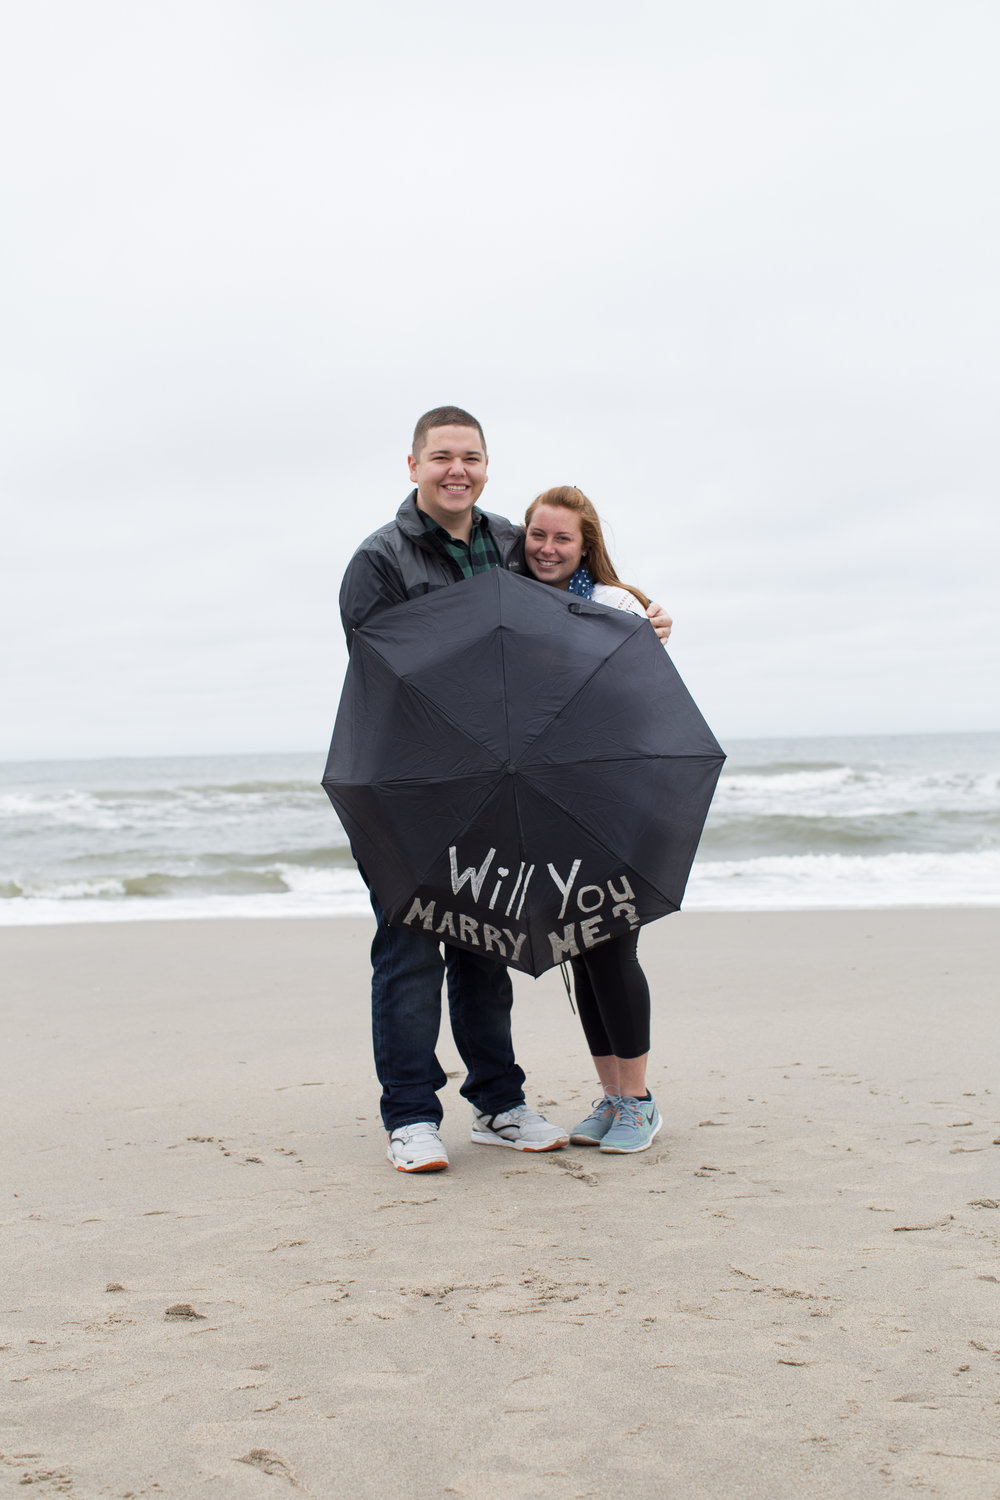 """Tell us about the proposal!: - We live in Rockaway Beach and often take walks along the beach, no matter the season. One cloudy, grey October morning, we headed to the beach for a walk. We started walking towards the shore and it looked like it was going to rain. After commenting on this, Tom announced that he brought an umbrella with him and asked if I wanted to see it. He opened up a black umbrella and in big silver letters read the words """"WILL YOU MARRY ME?"""" I was shocked. It was the most exciting moment of my life! When we got to my parents house to share our big news, every one of our closest friends and family members were there ready to celebrate with us."""